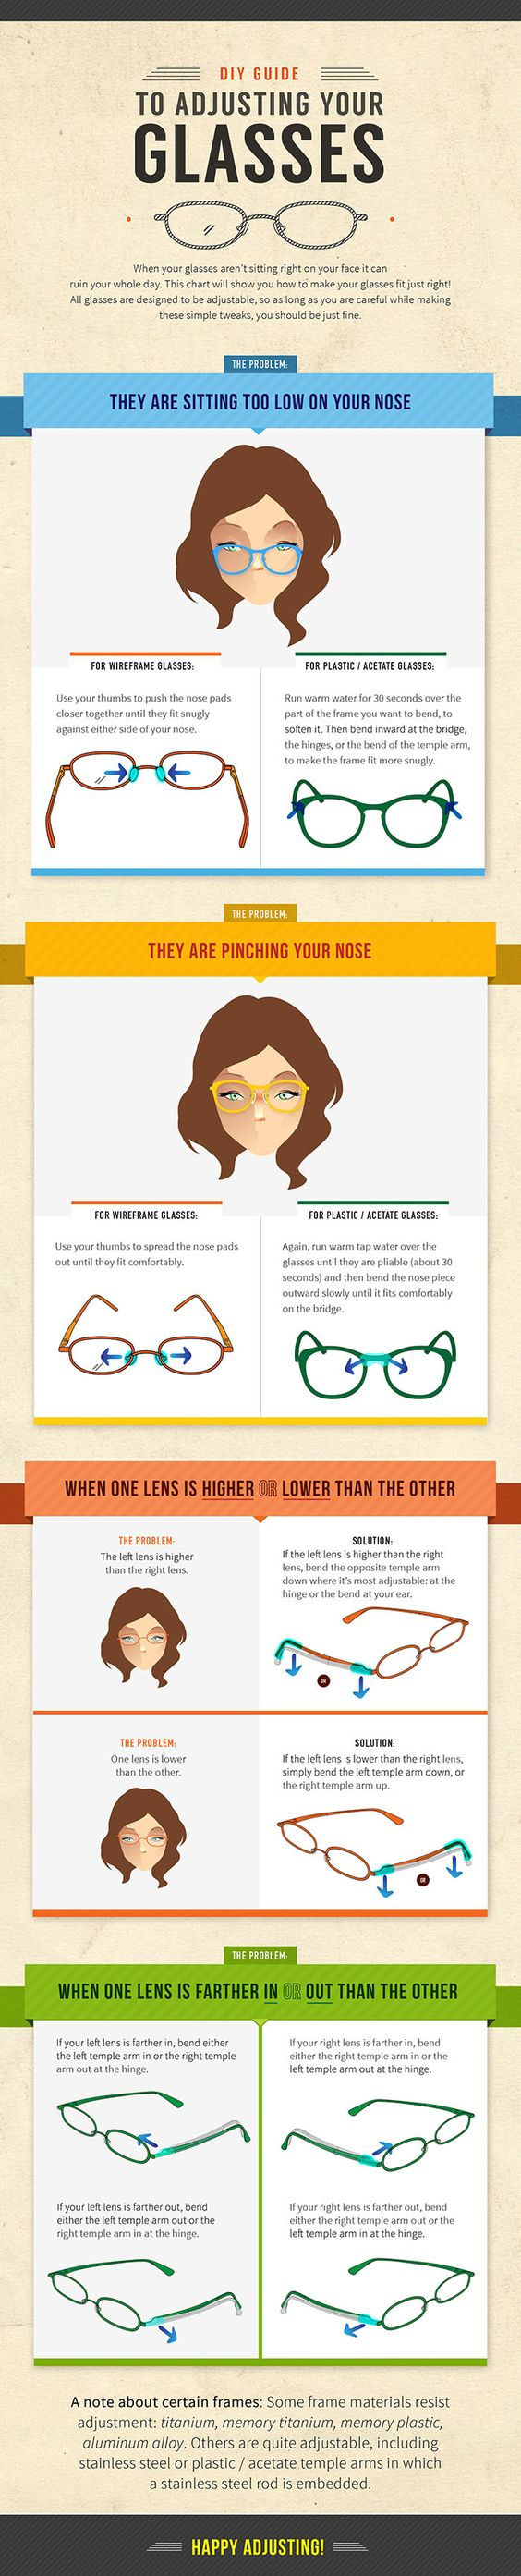 How to adjust your glasses - Zenni Optical Infographic